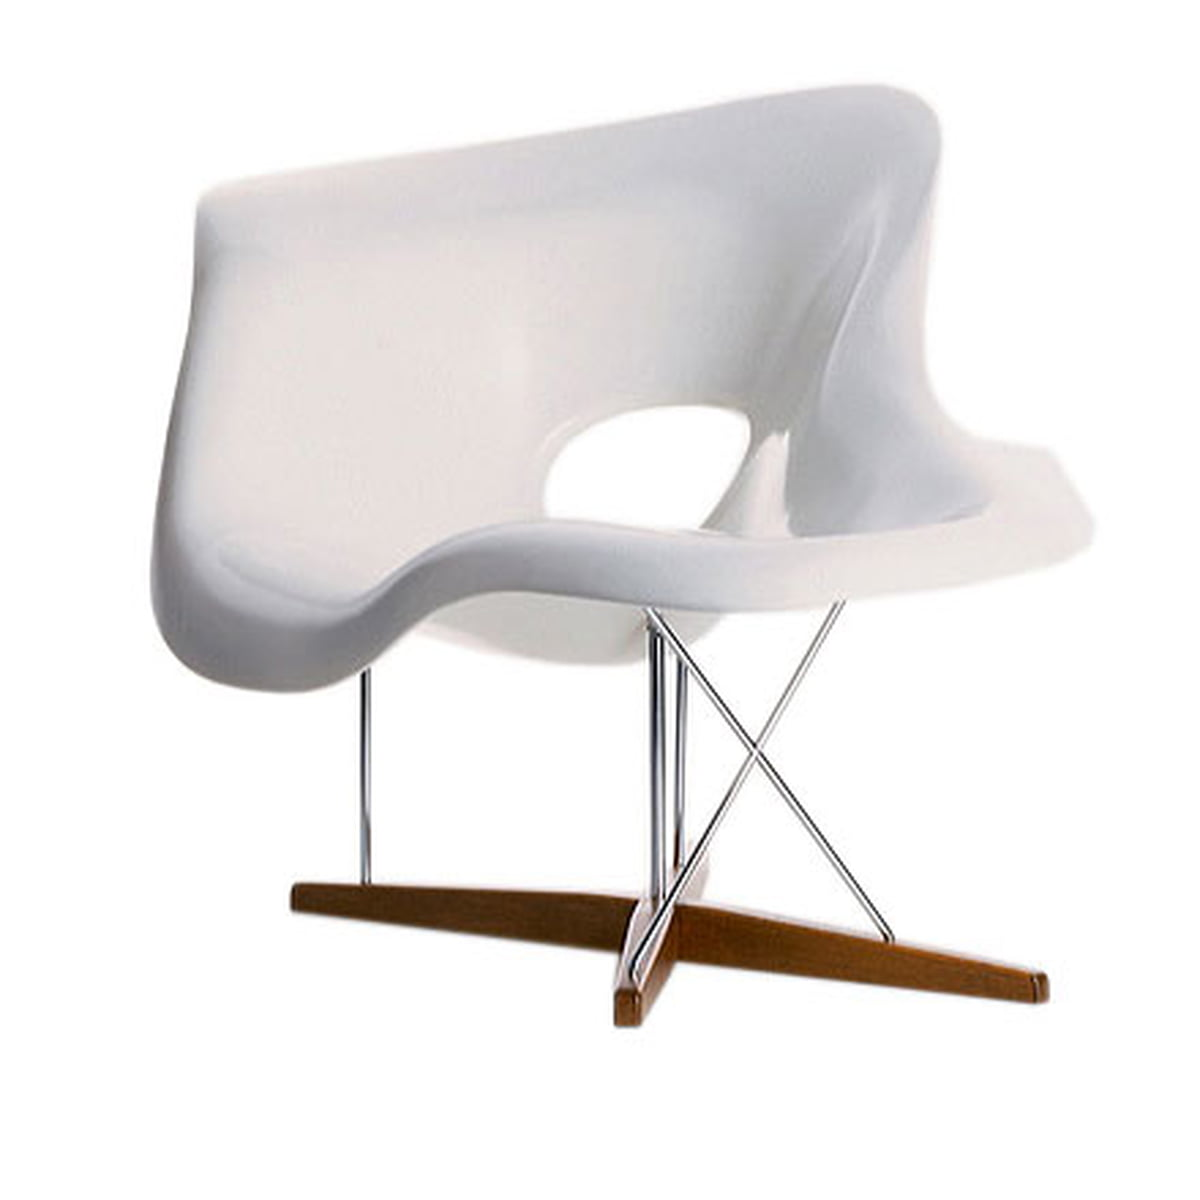 La chaise vitra boutique - Chaise charles et ray eames ...